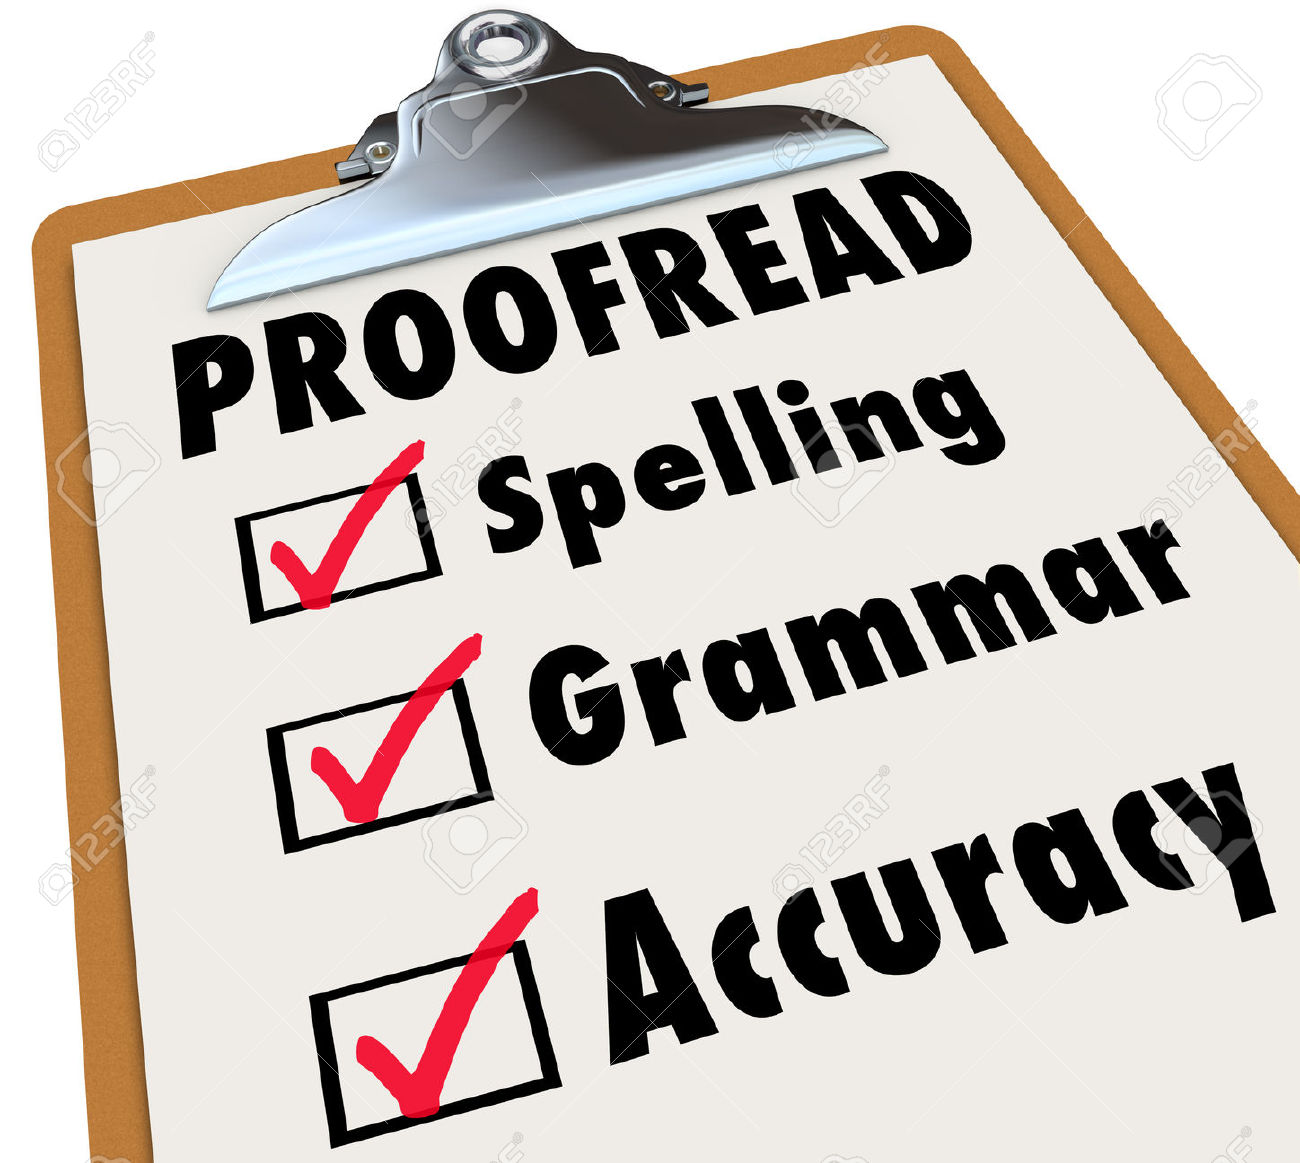 essay proofreader twenty hueandi co essay proofreader